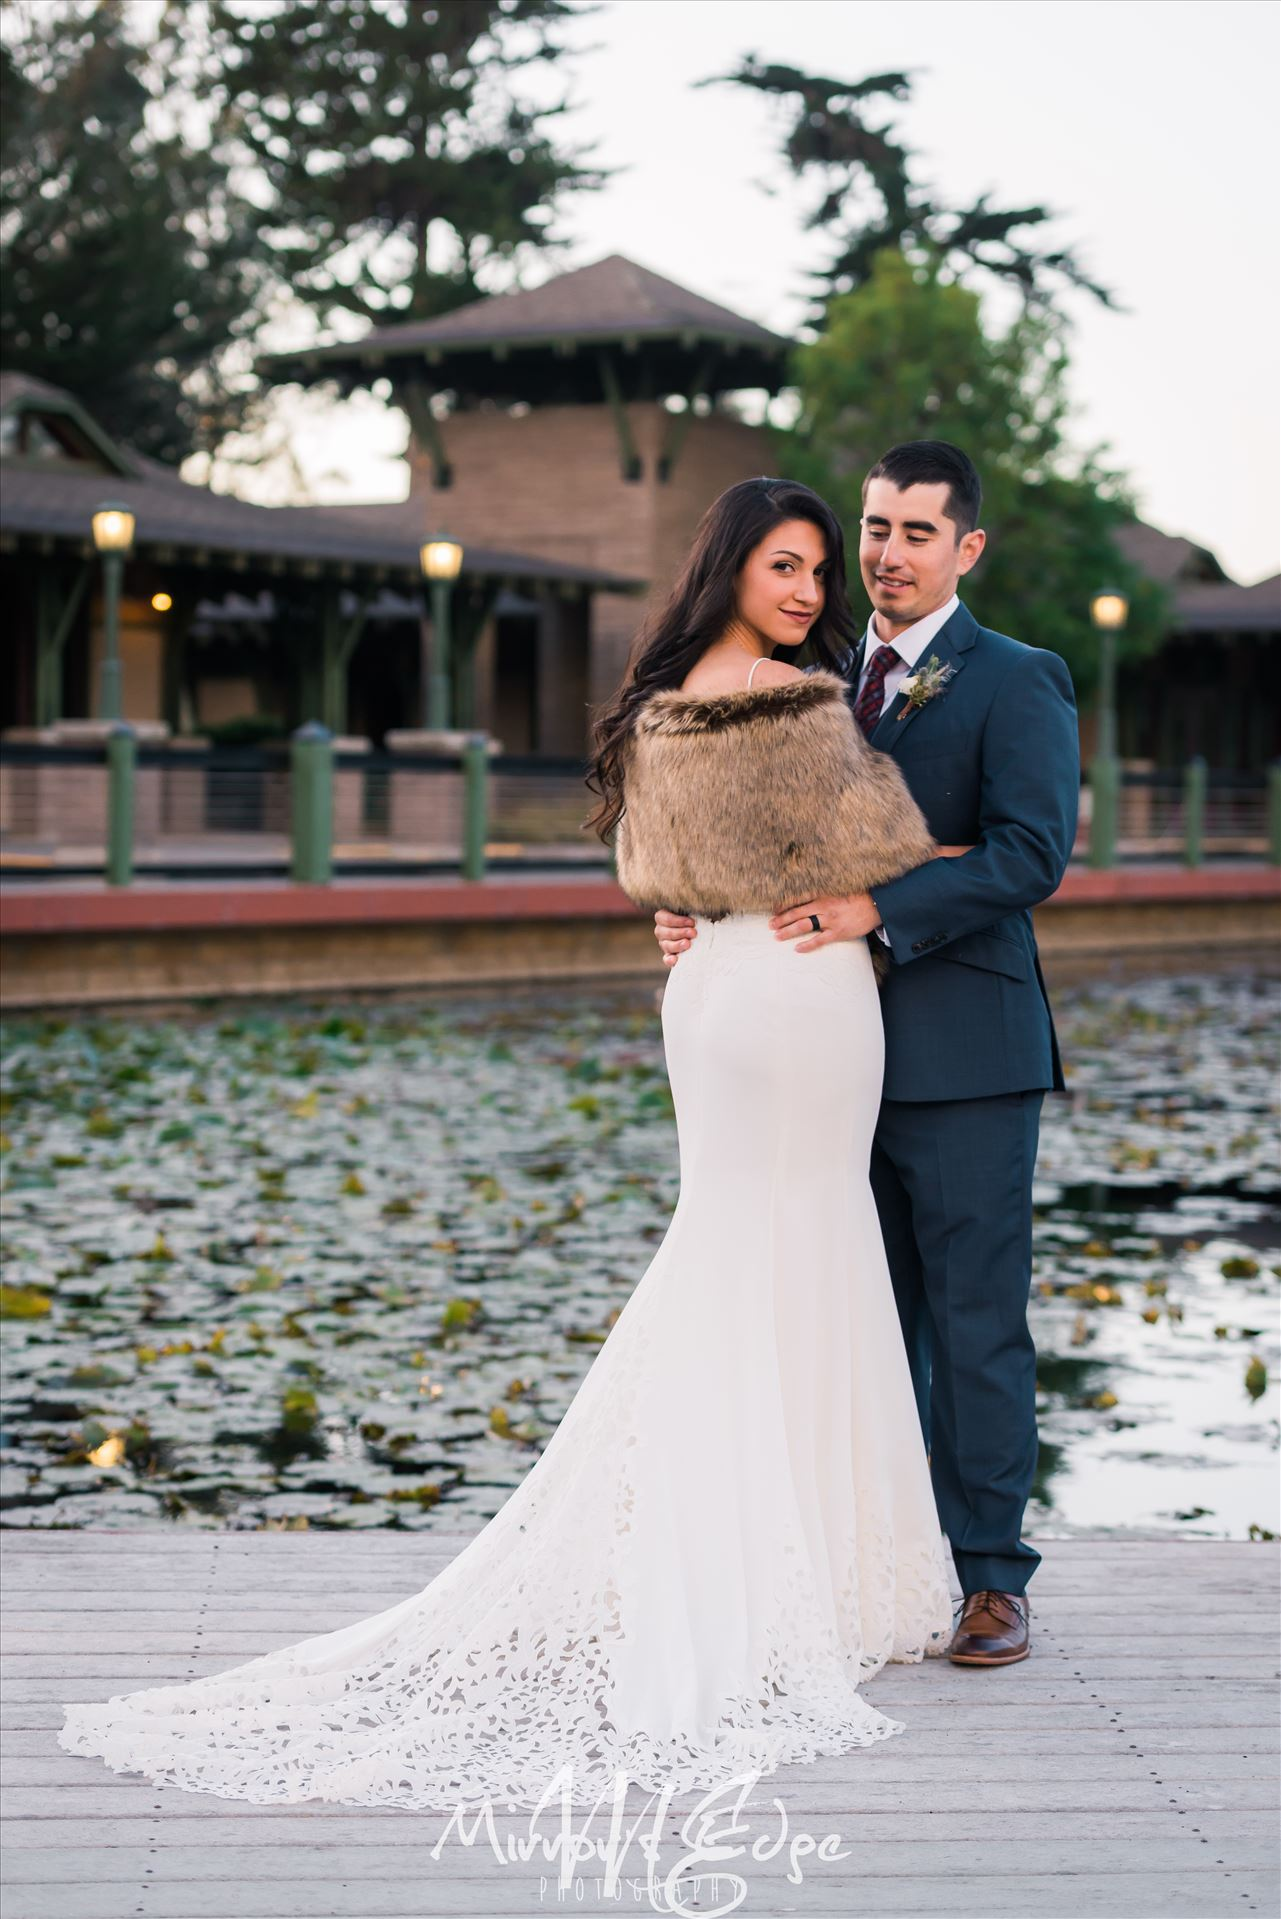 Arroyo Grande Wedding - Cypress Ridge Pavilion Wedding at Cypress Ridge Golf Course in Arroyo Grande California Wedding Photography by San Luis Obispo Wedding Photographer. Bride and Groom by the lake. by Sarah Williams